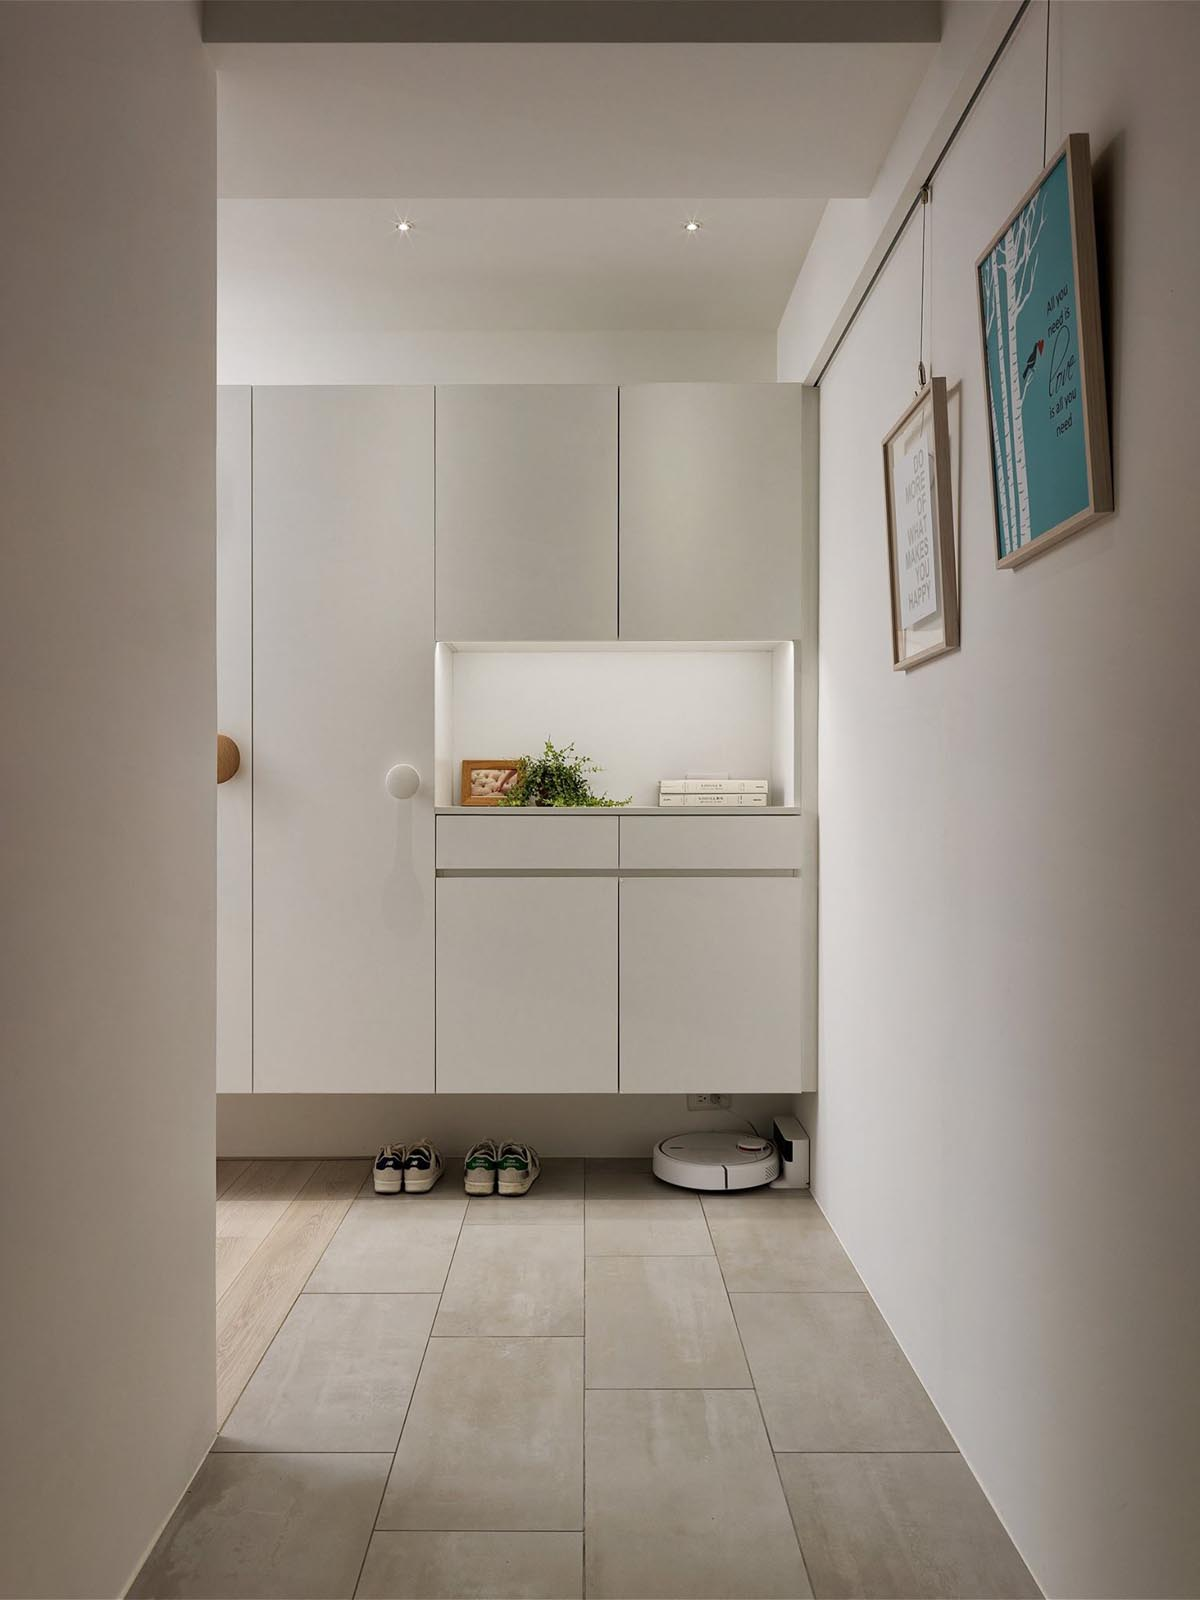 Completely White Apartment With Dominant Central Home Office images 16